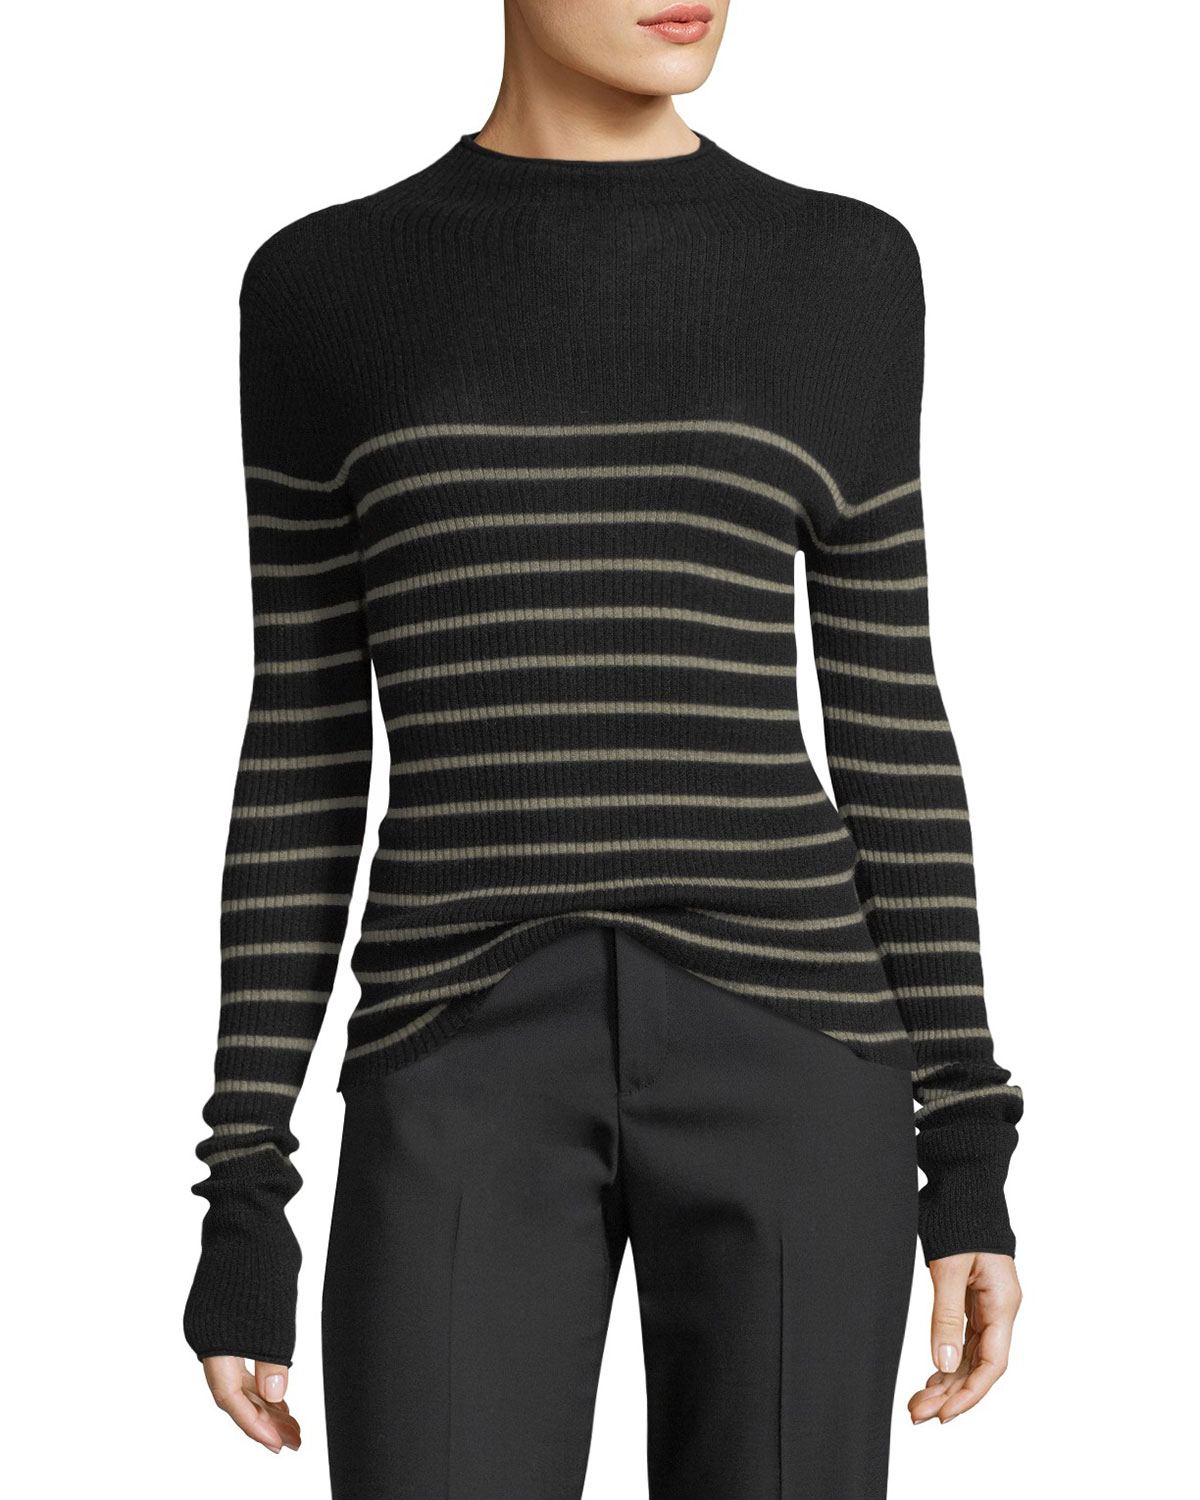 Sale Big Sale Clearance Best Place Mock-Neck Drawstring Pullover Sweater Vince Cheap For Nice Best Sale Cheap Price For Cheap Online PhgsJa